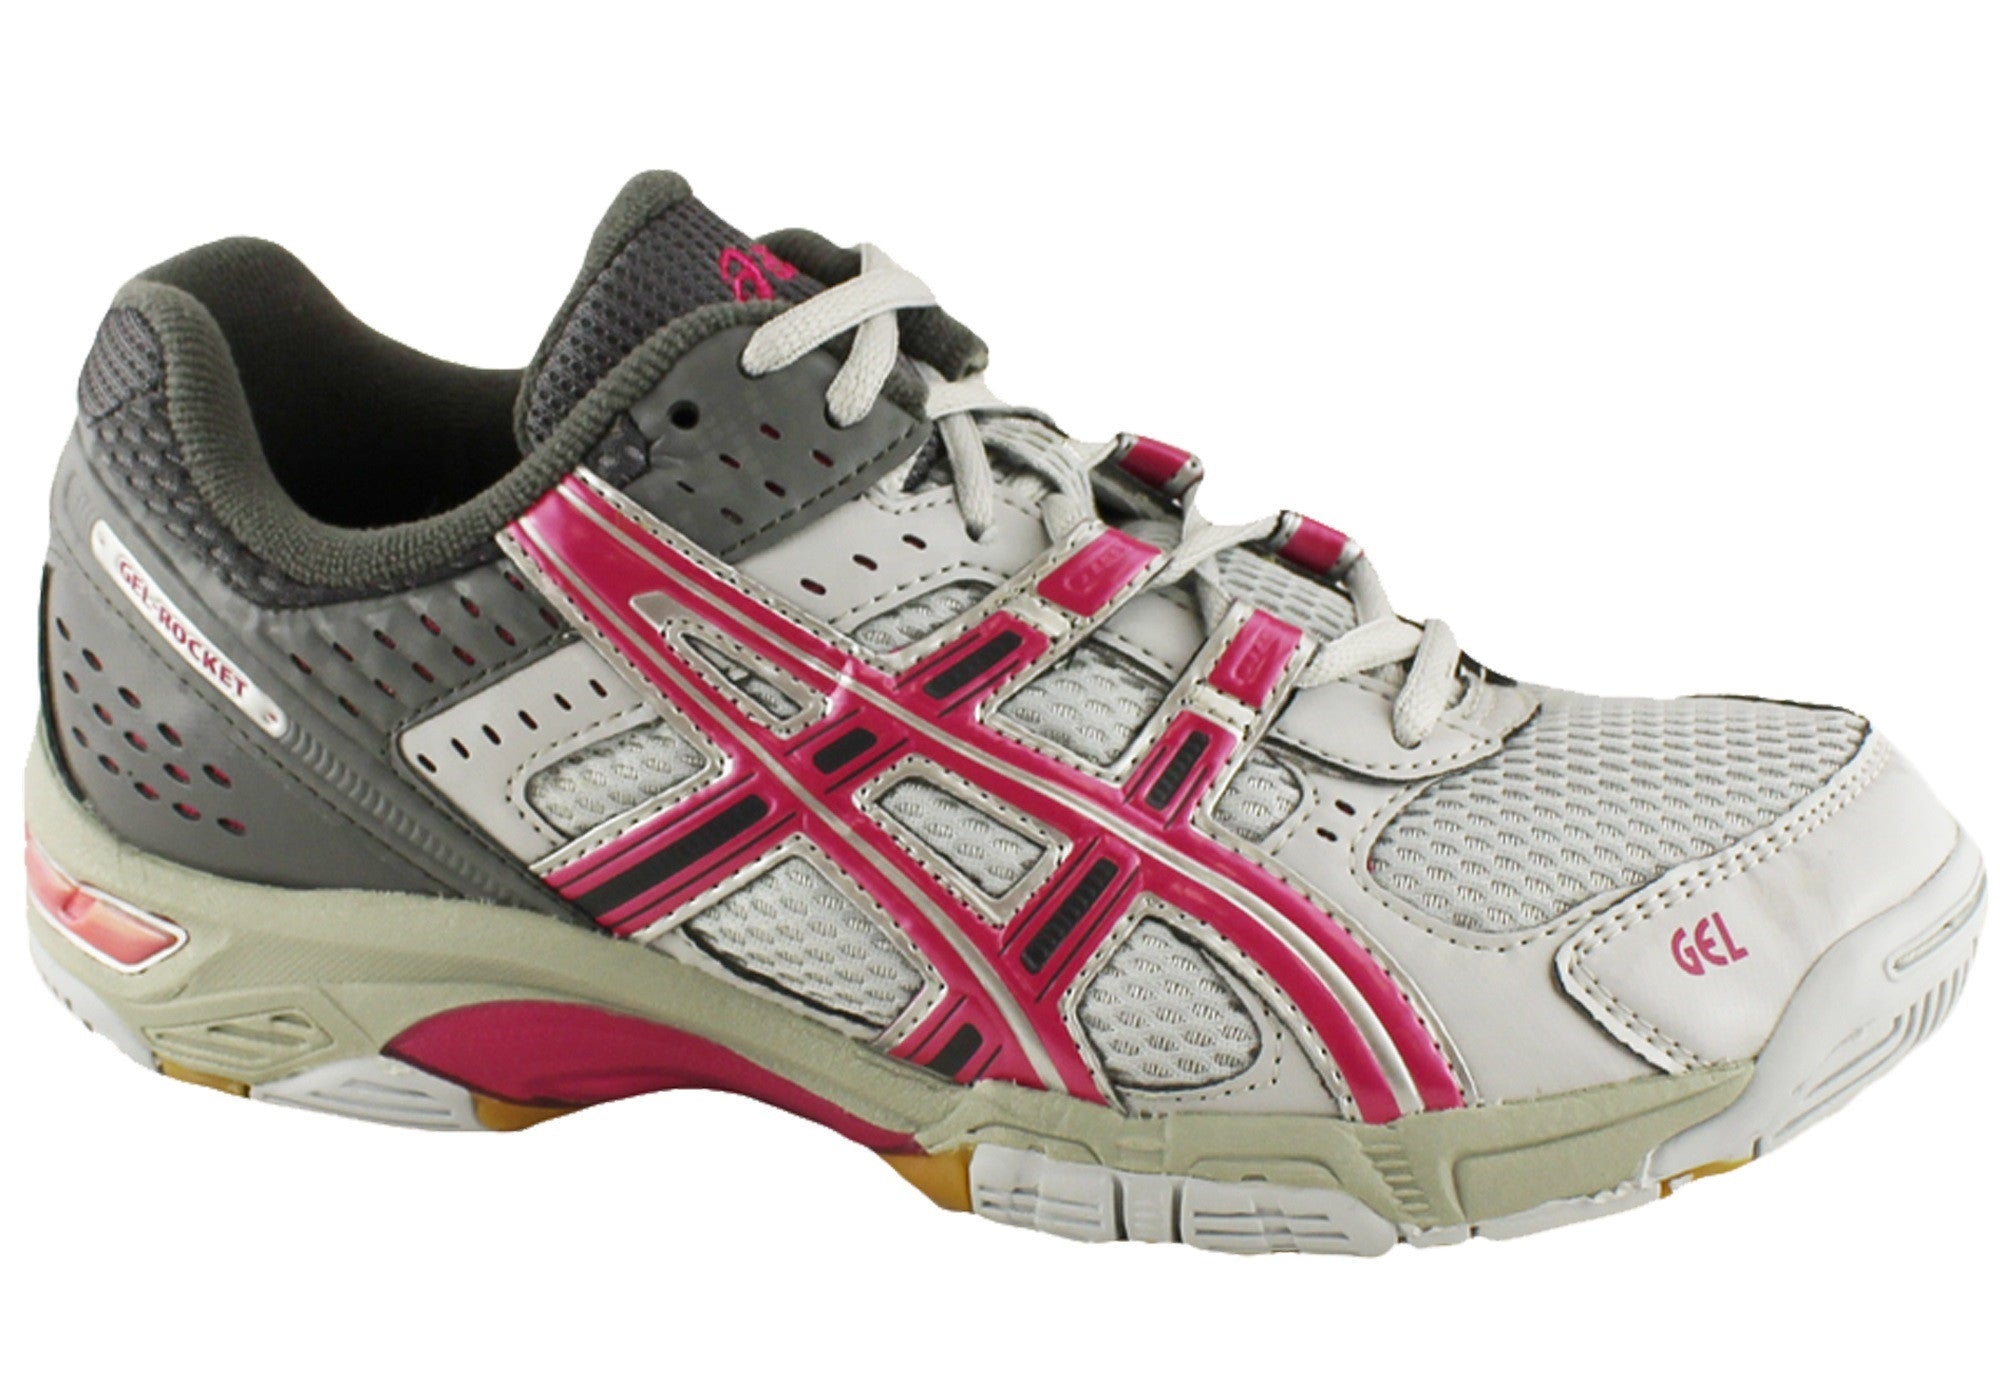 Ebay Rocket Sports Asics Womens Shoes Netball Gel Trainers New 8wSqpEax